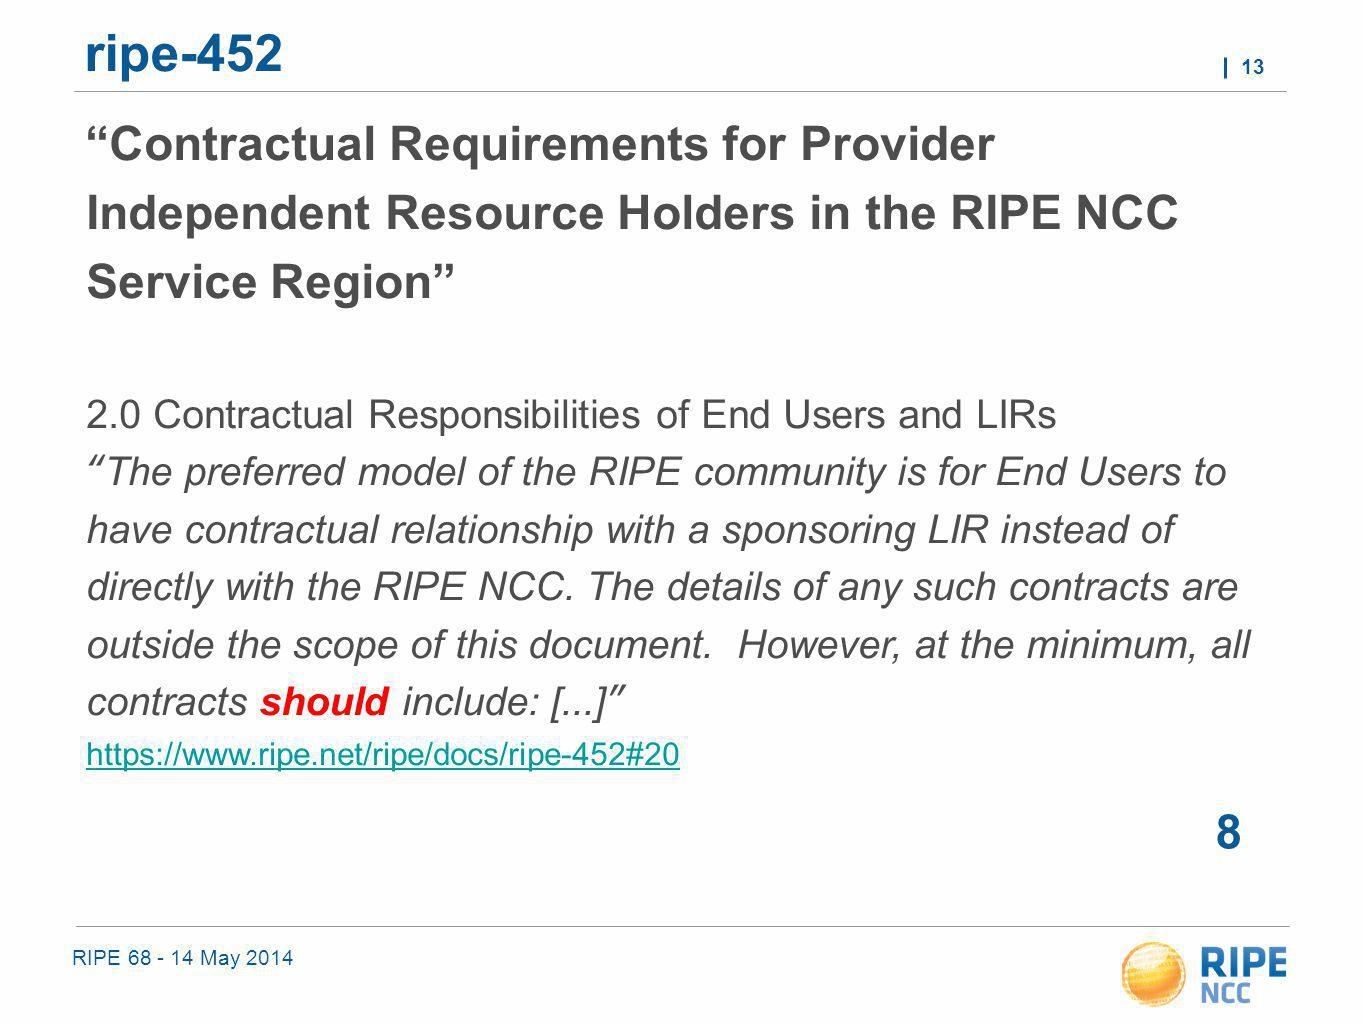 RIPE 68 - 14 May 2014 13 ripe-452 8 Contractual Requirements for Provider Independent Resource Holders in the RIPE NCC Service Region 2.0 Contractual Responsibilities of End Users and LIRs The preferred model of the RIPE community is for End Users to have contractual relationship with a sponsoring LIR instead of directly with the RIPE NCC.